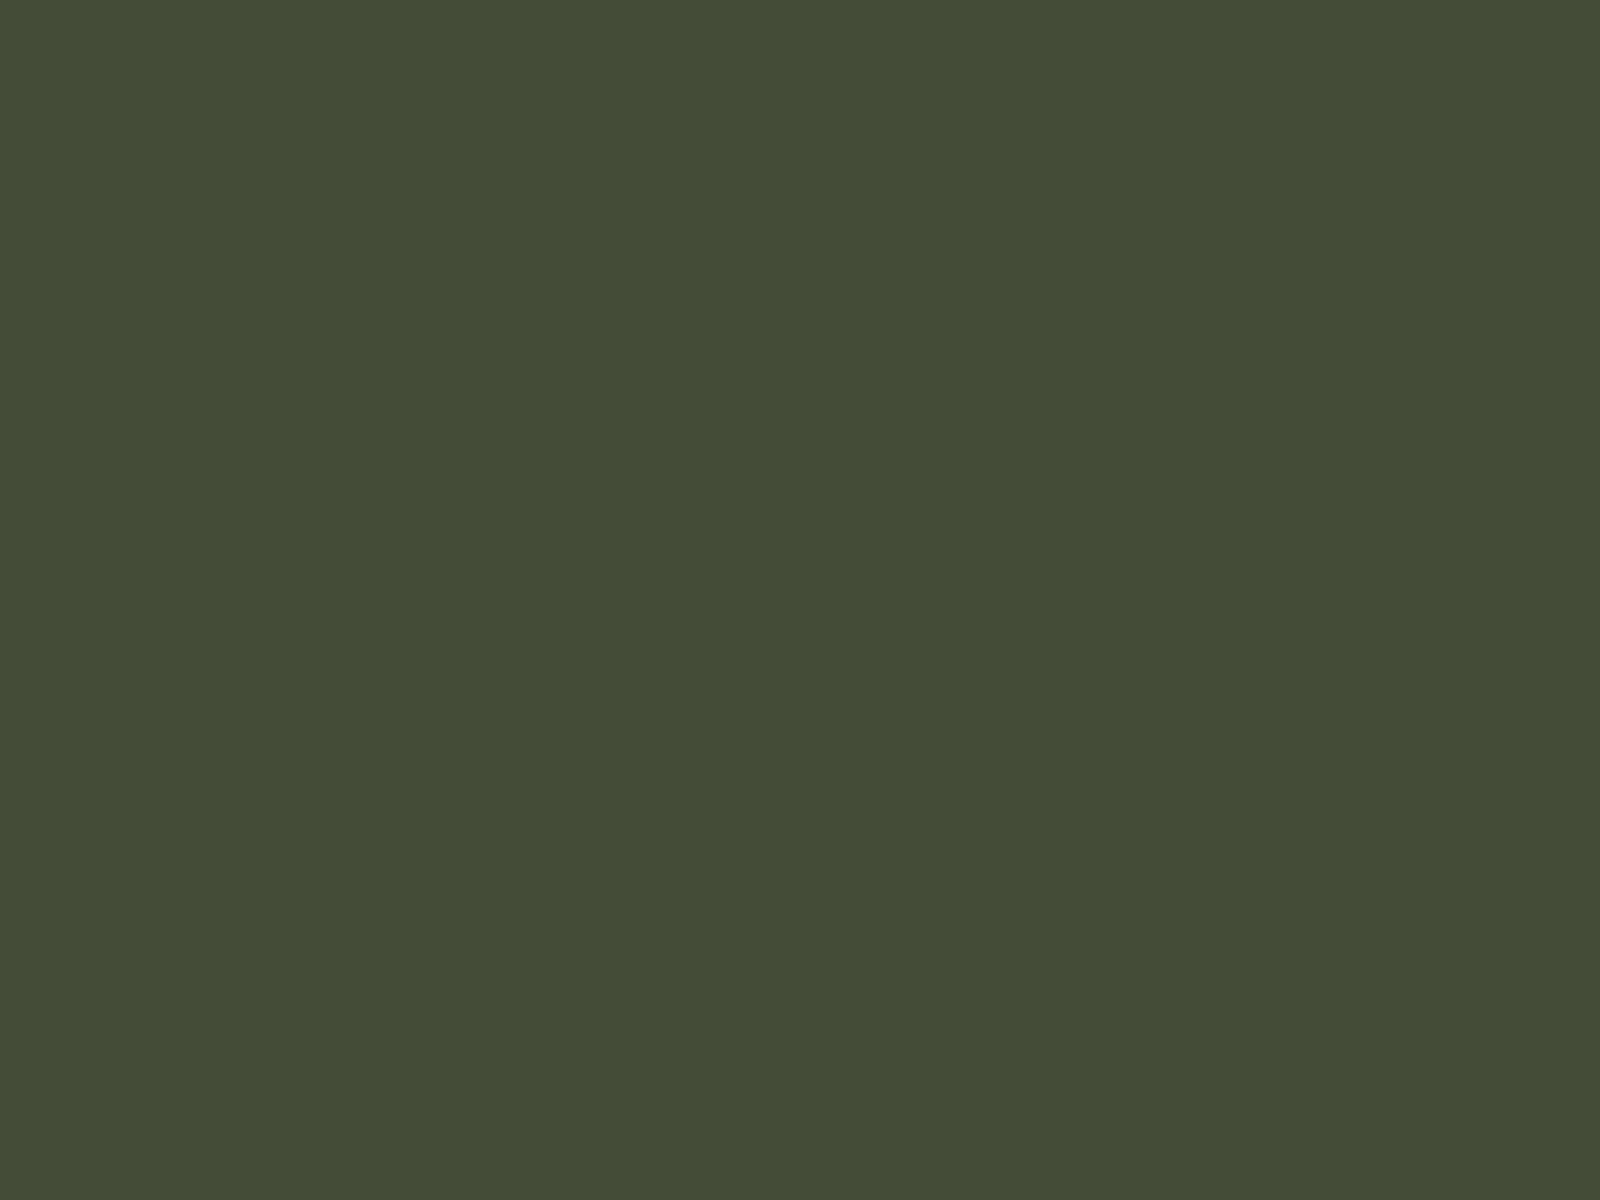 1600x1200 Rifle Green Solid Color Background